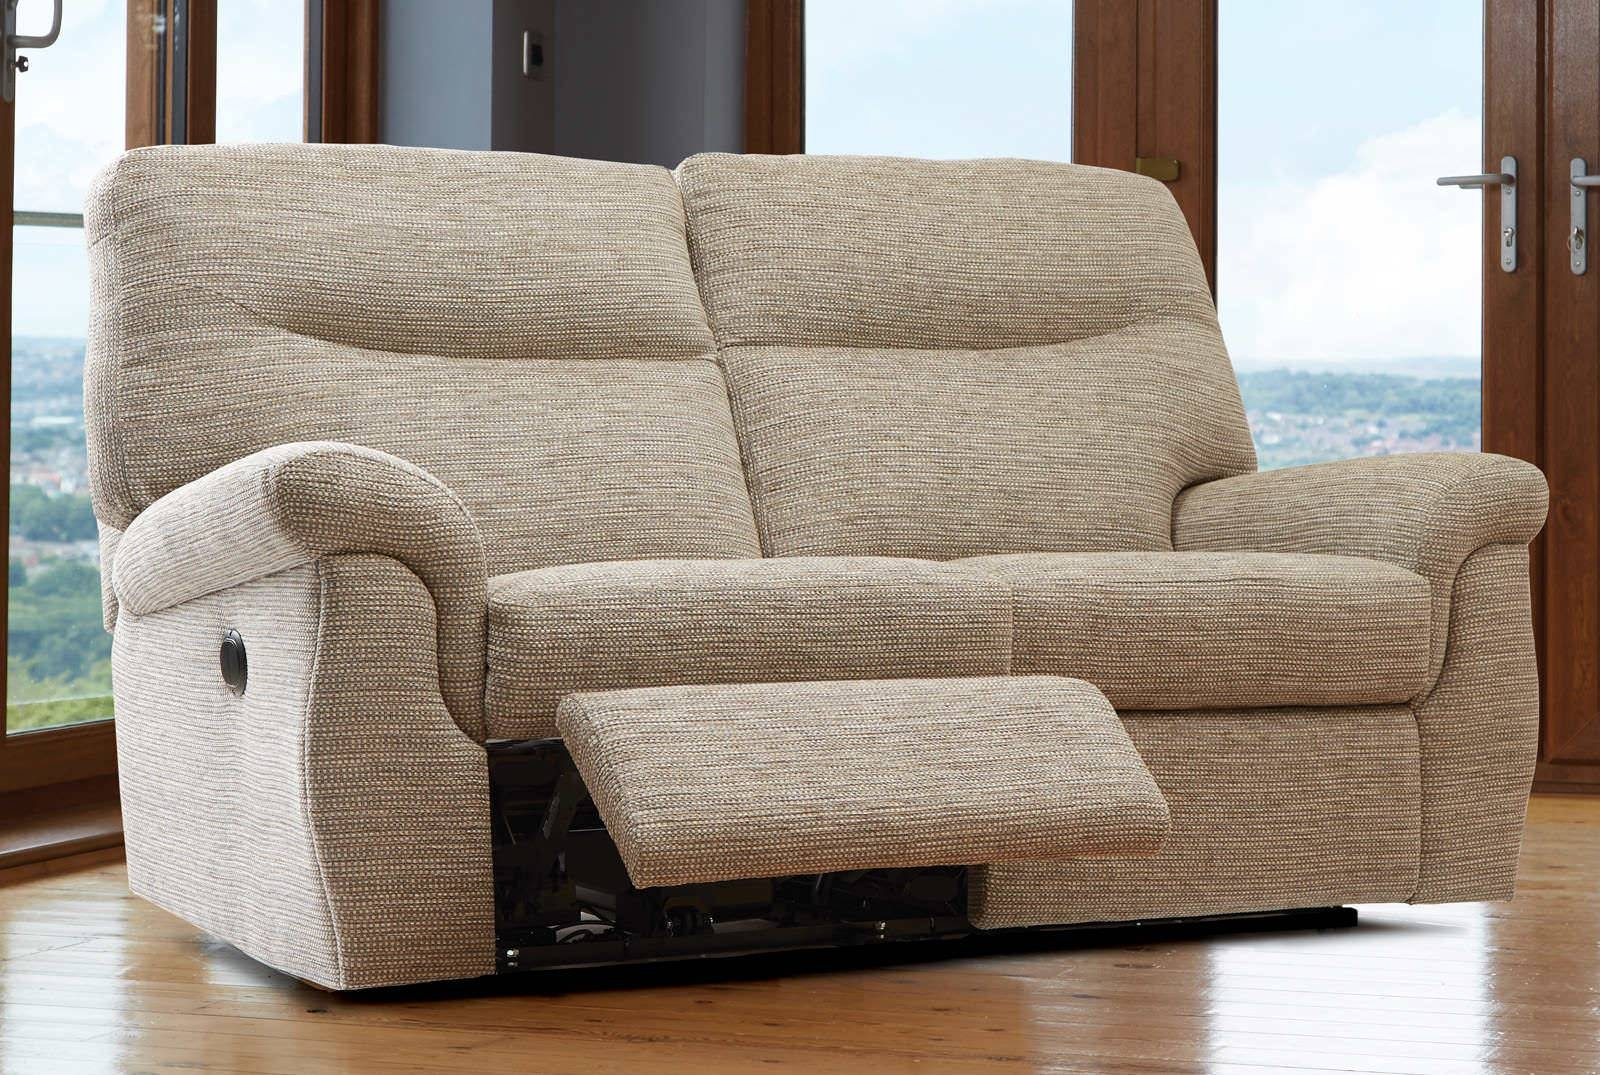 2 Seater Recliner Sofa Fabric - Simoon - Simoon in 2 Seat Recliner Sofas (Image 4 of 30)